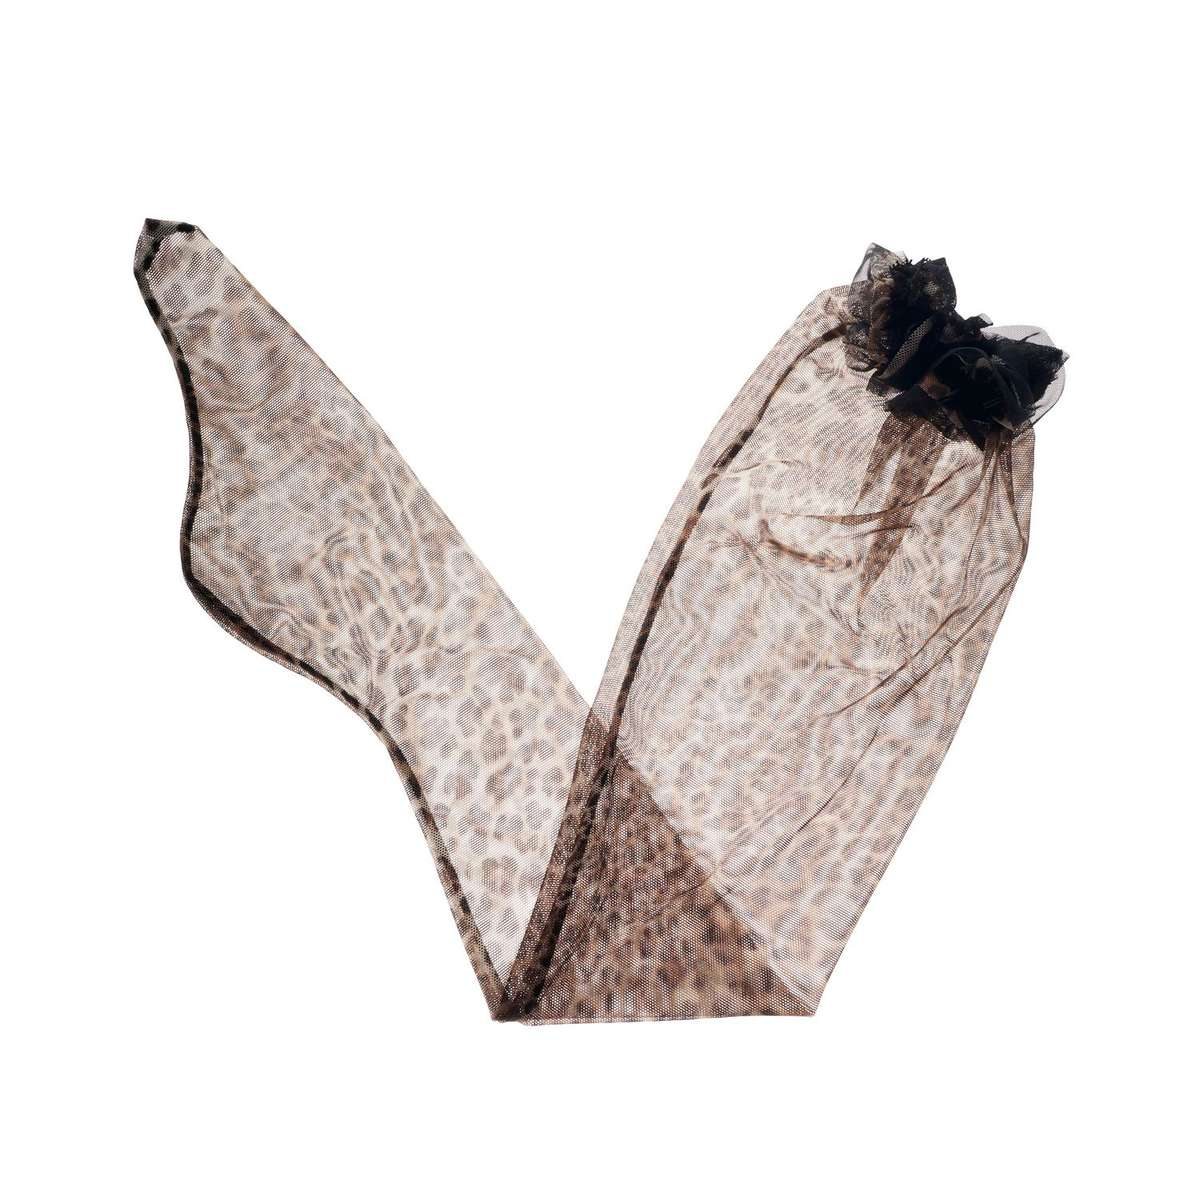 Leopard-print Lace Stocking